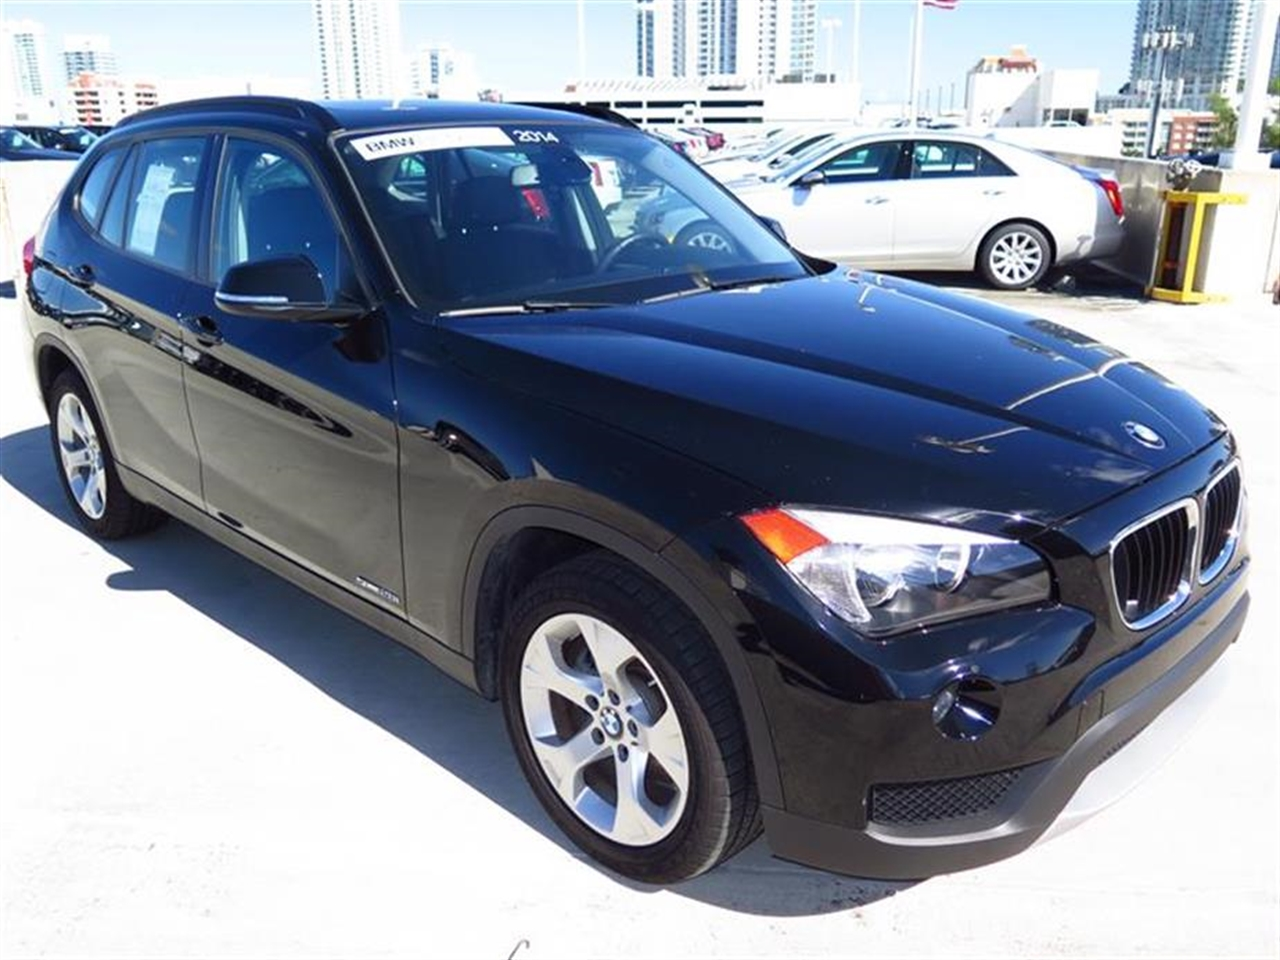 2014 BMW X1 RWD 4dr sDrive28i 12392 miles 2 Seatback Storage Pockets 3 12V DC Power Outlets LEAT